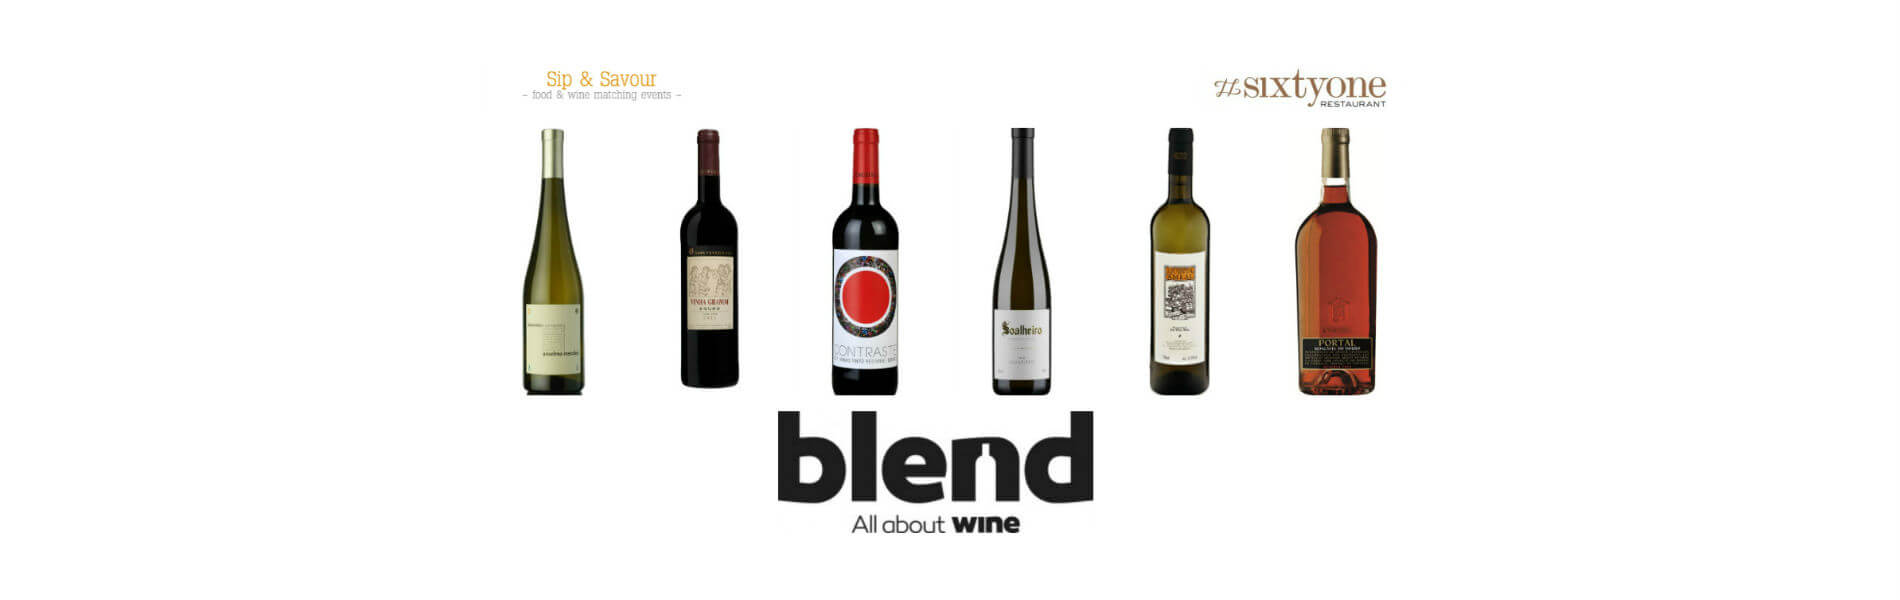 Blend-All-About-Wine-Blend-Teams-Up-London-Slider-6